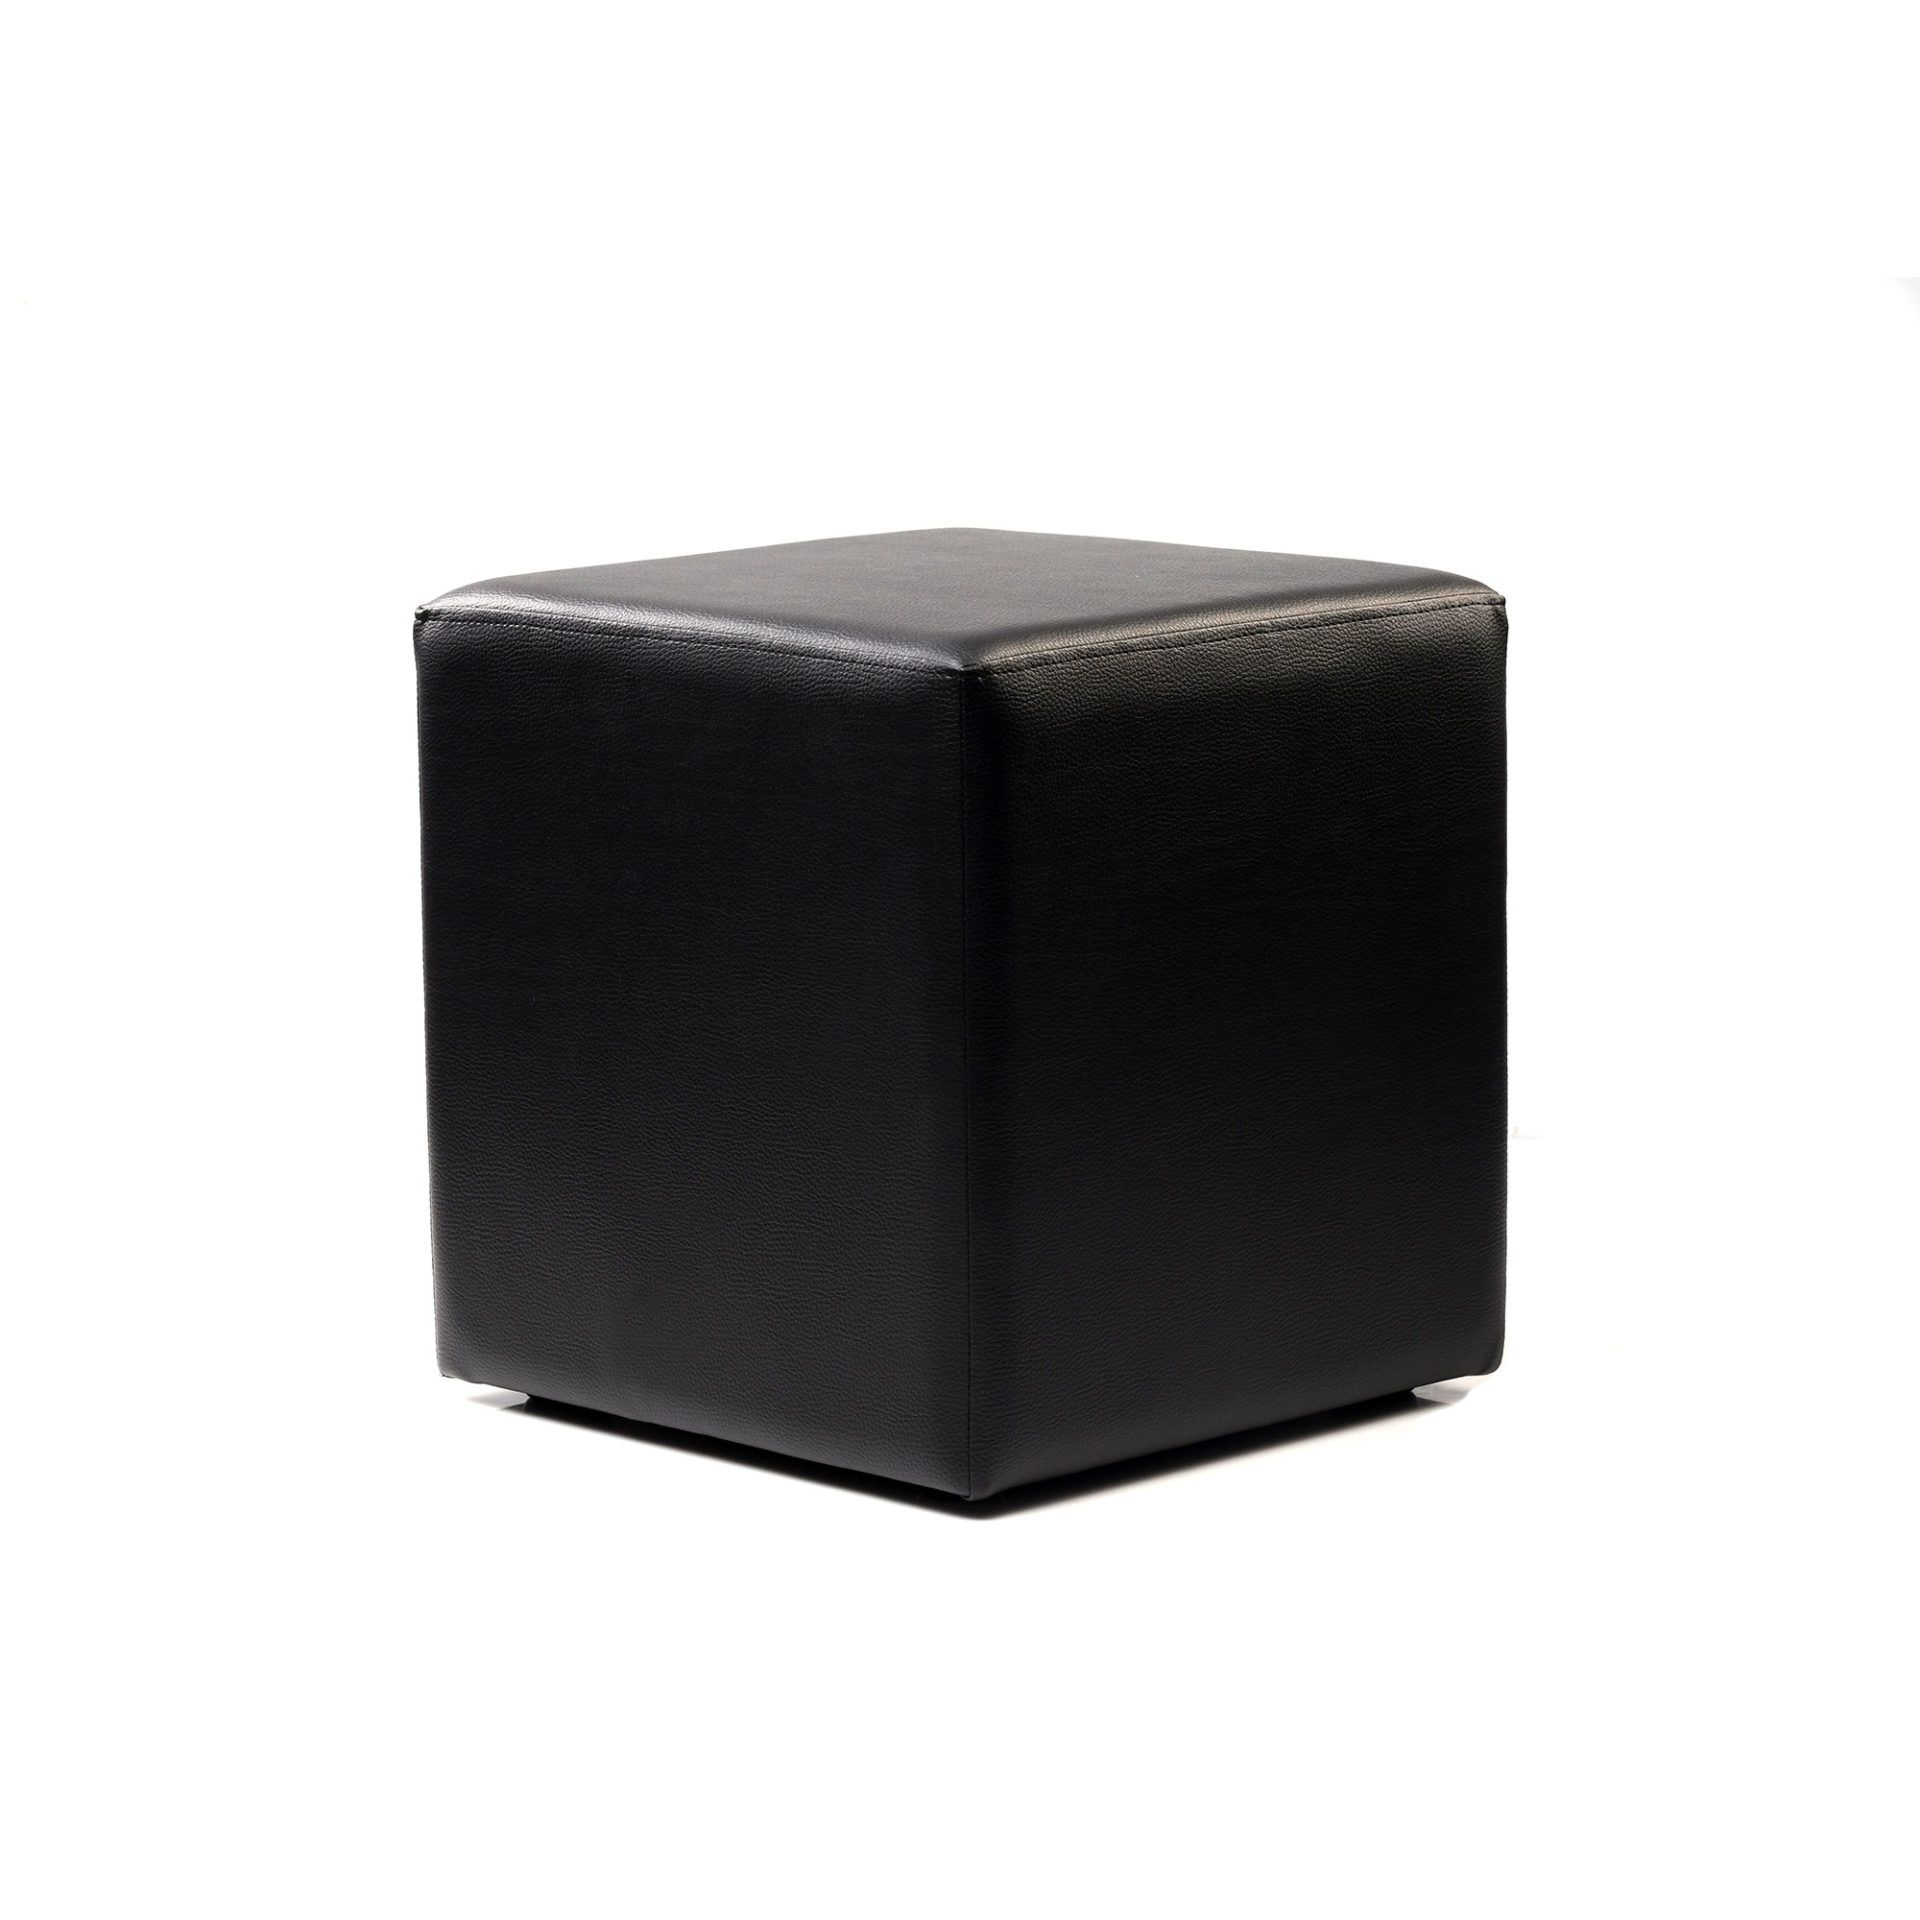 Ottoman Cube - Black - Made In Europe